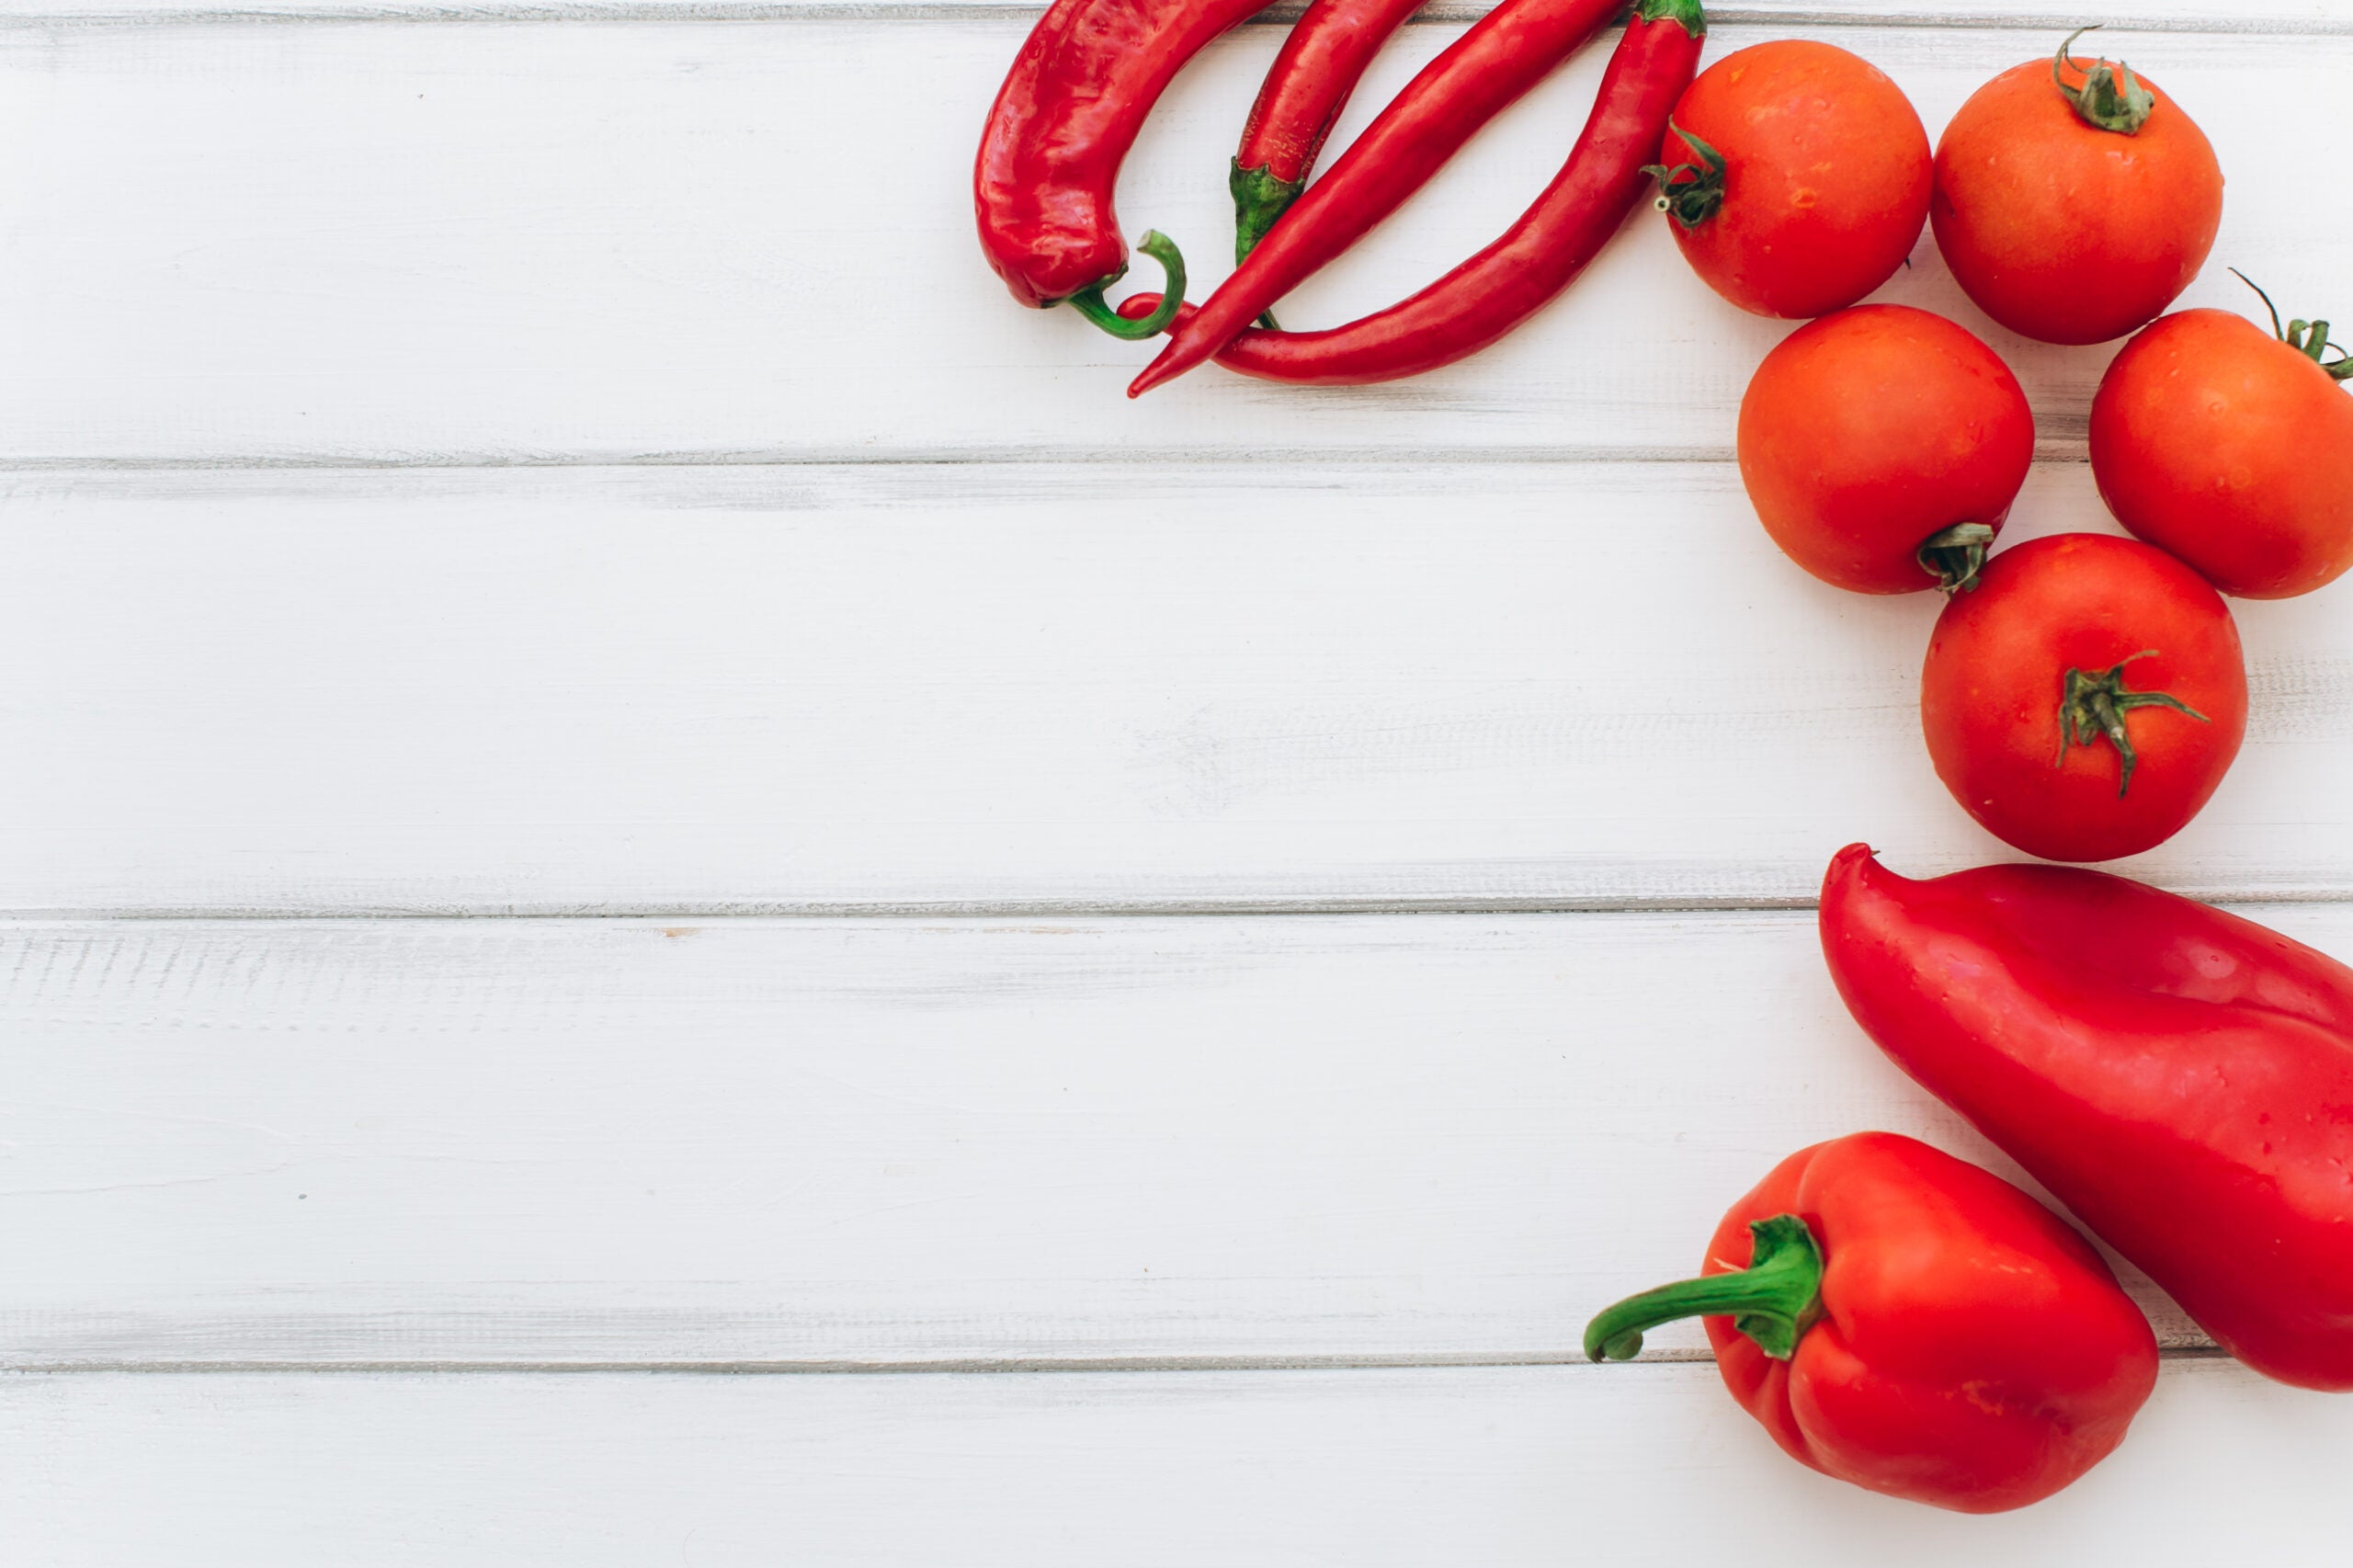 tomatoes and red peppers on a white table